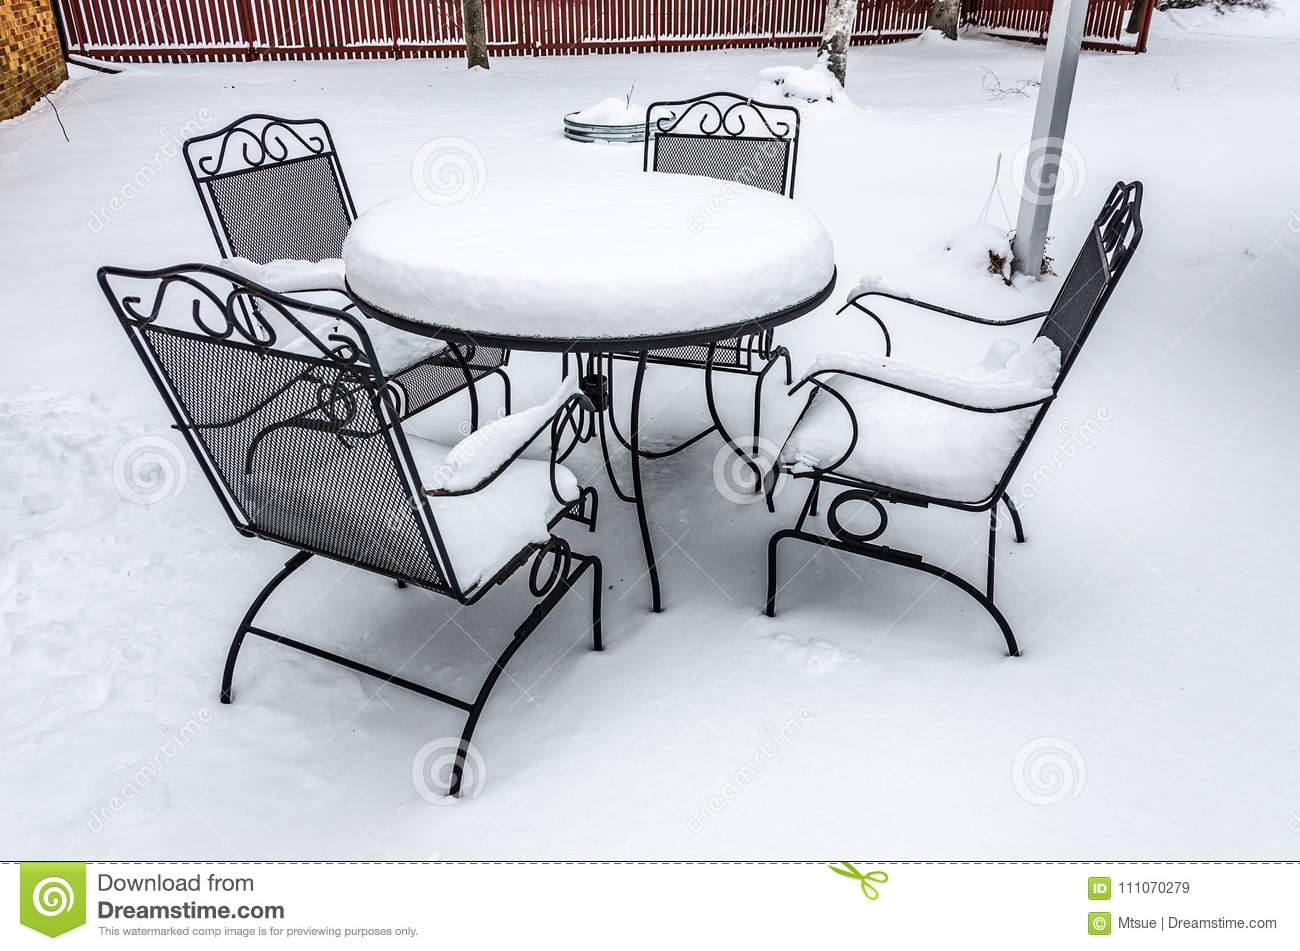 Peachy Snow Covered Patio Furniture Stock Image Image Of Download Free Architecture Designs Embacsunscenecom